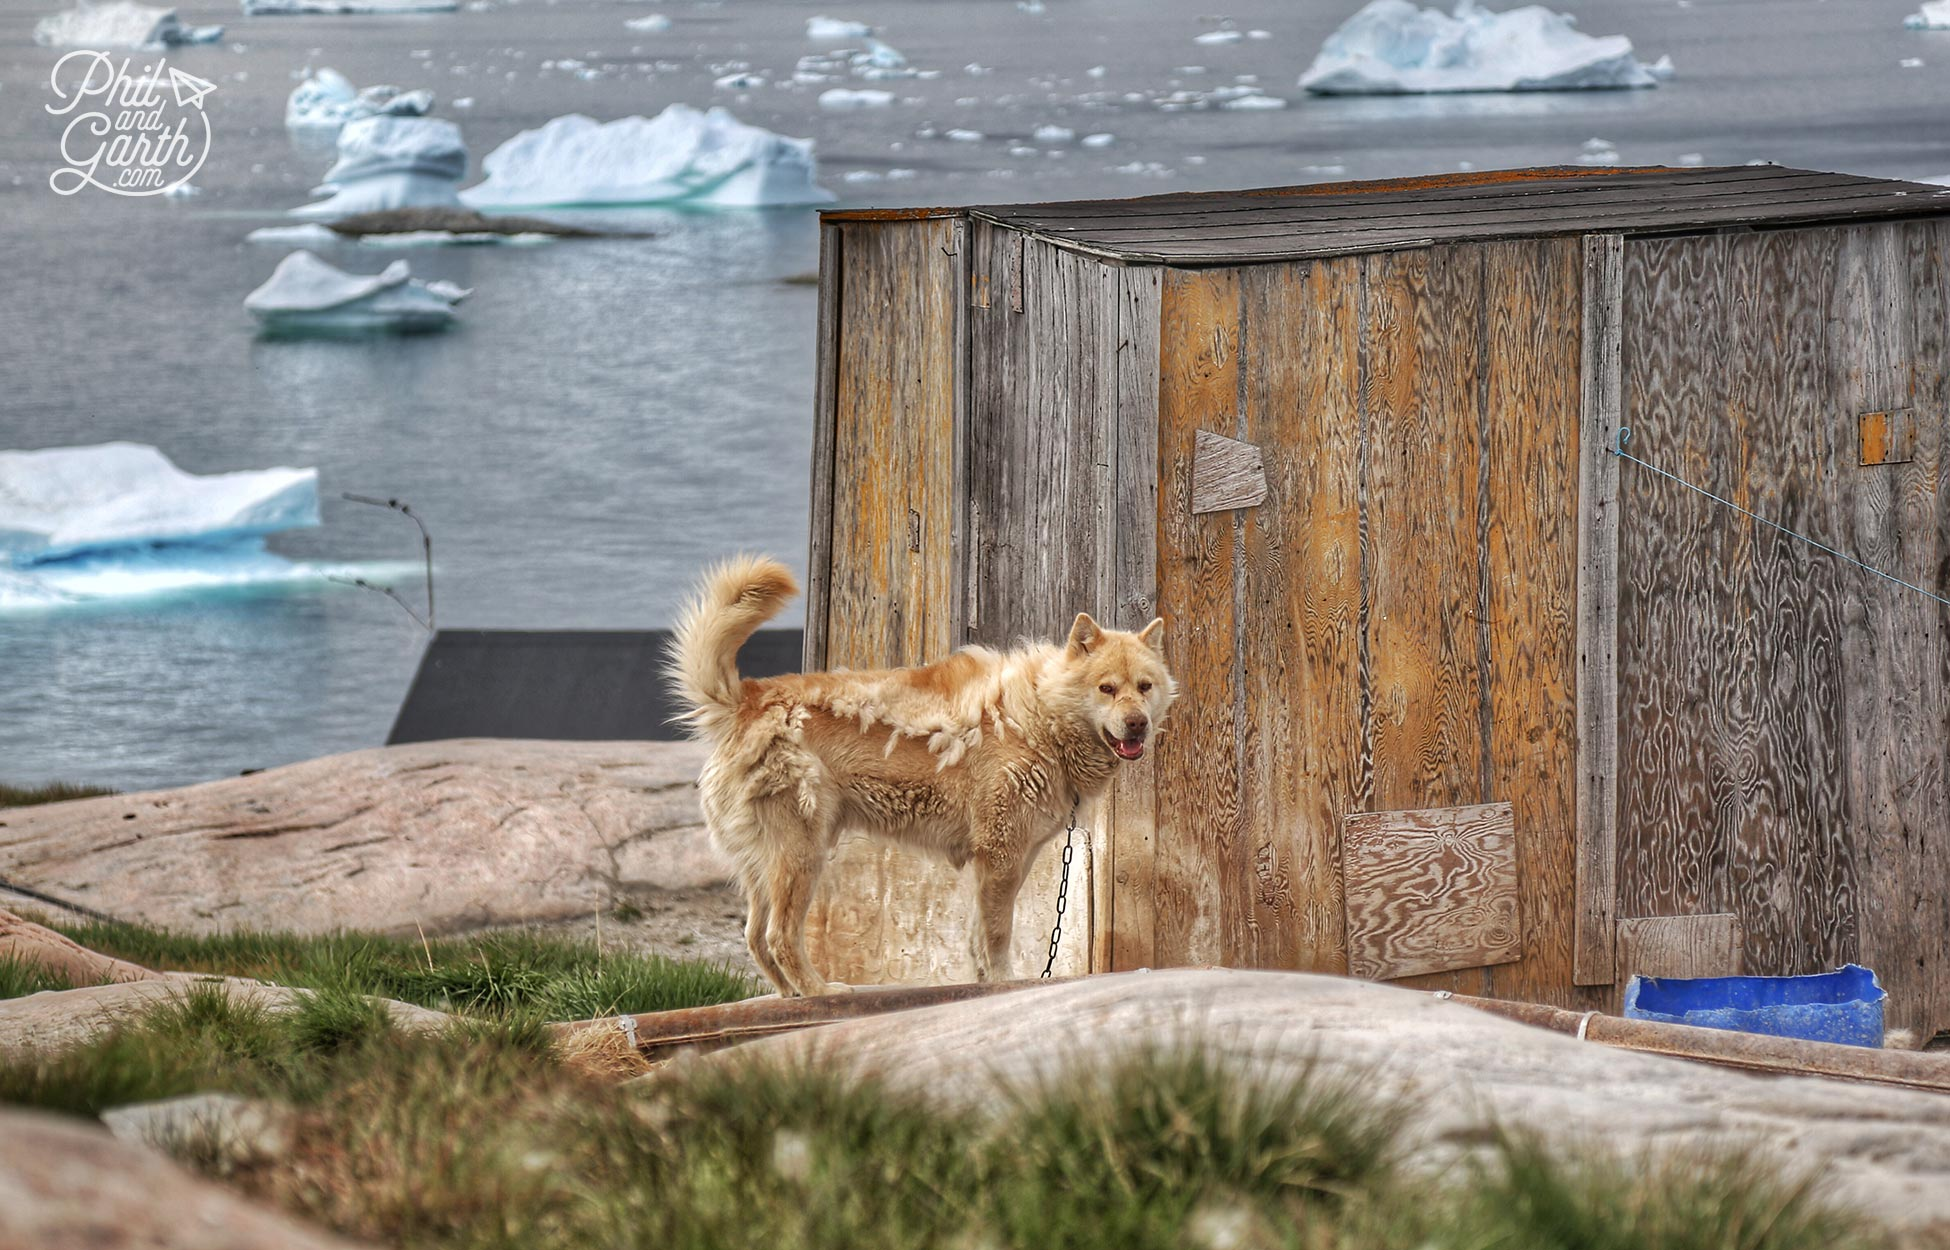 There are about 4,000 sled dogs in Ilulissat